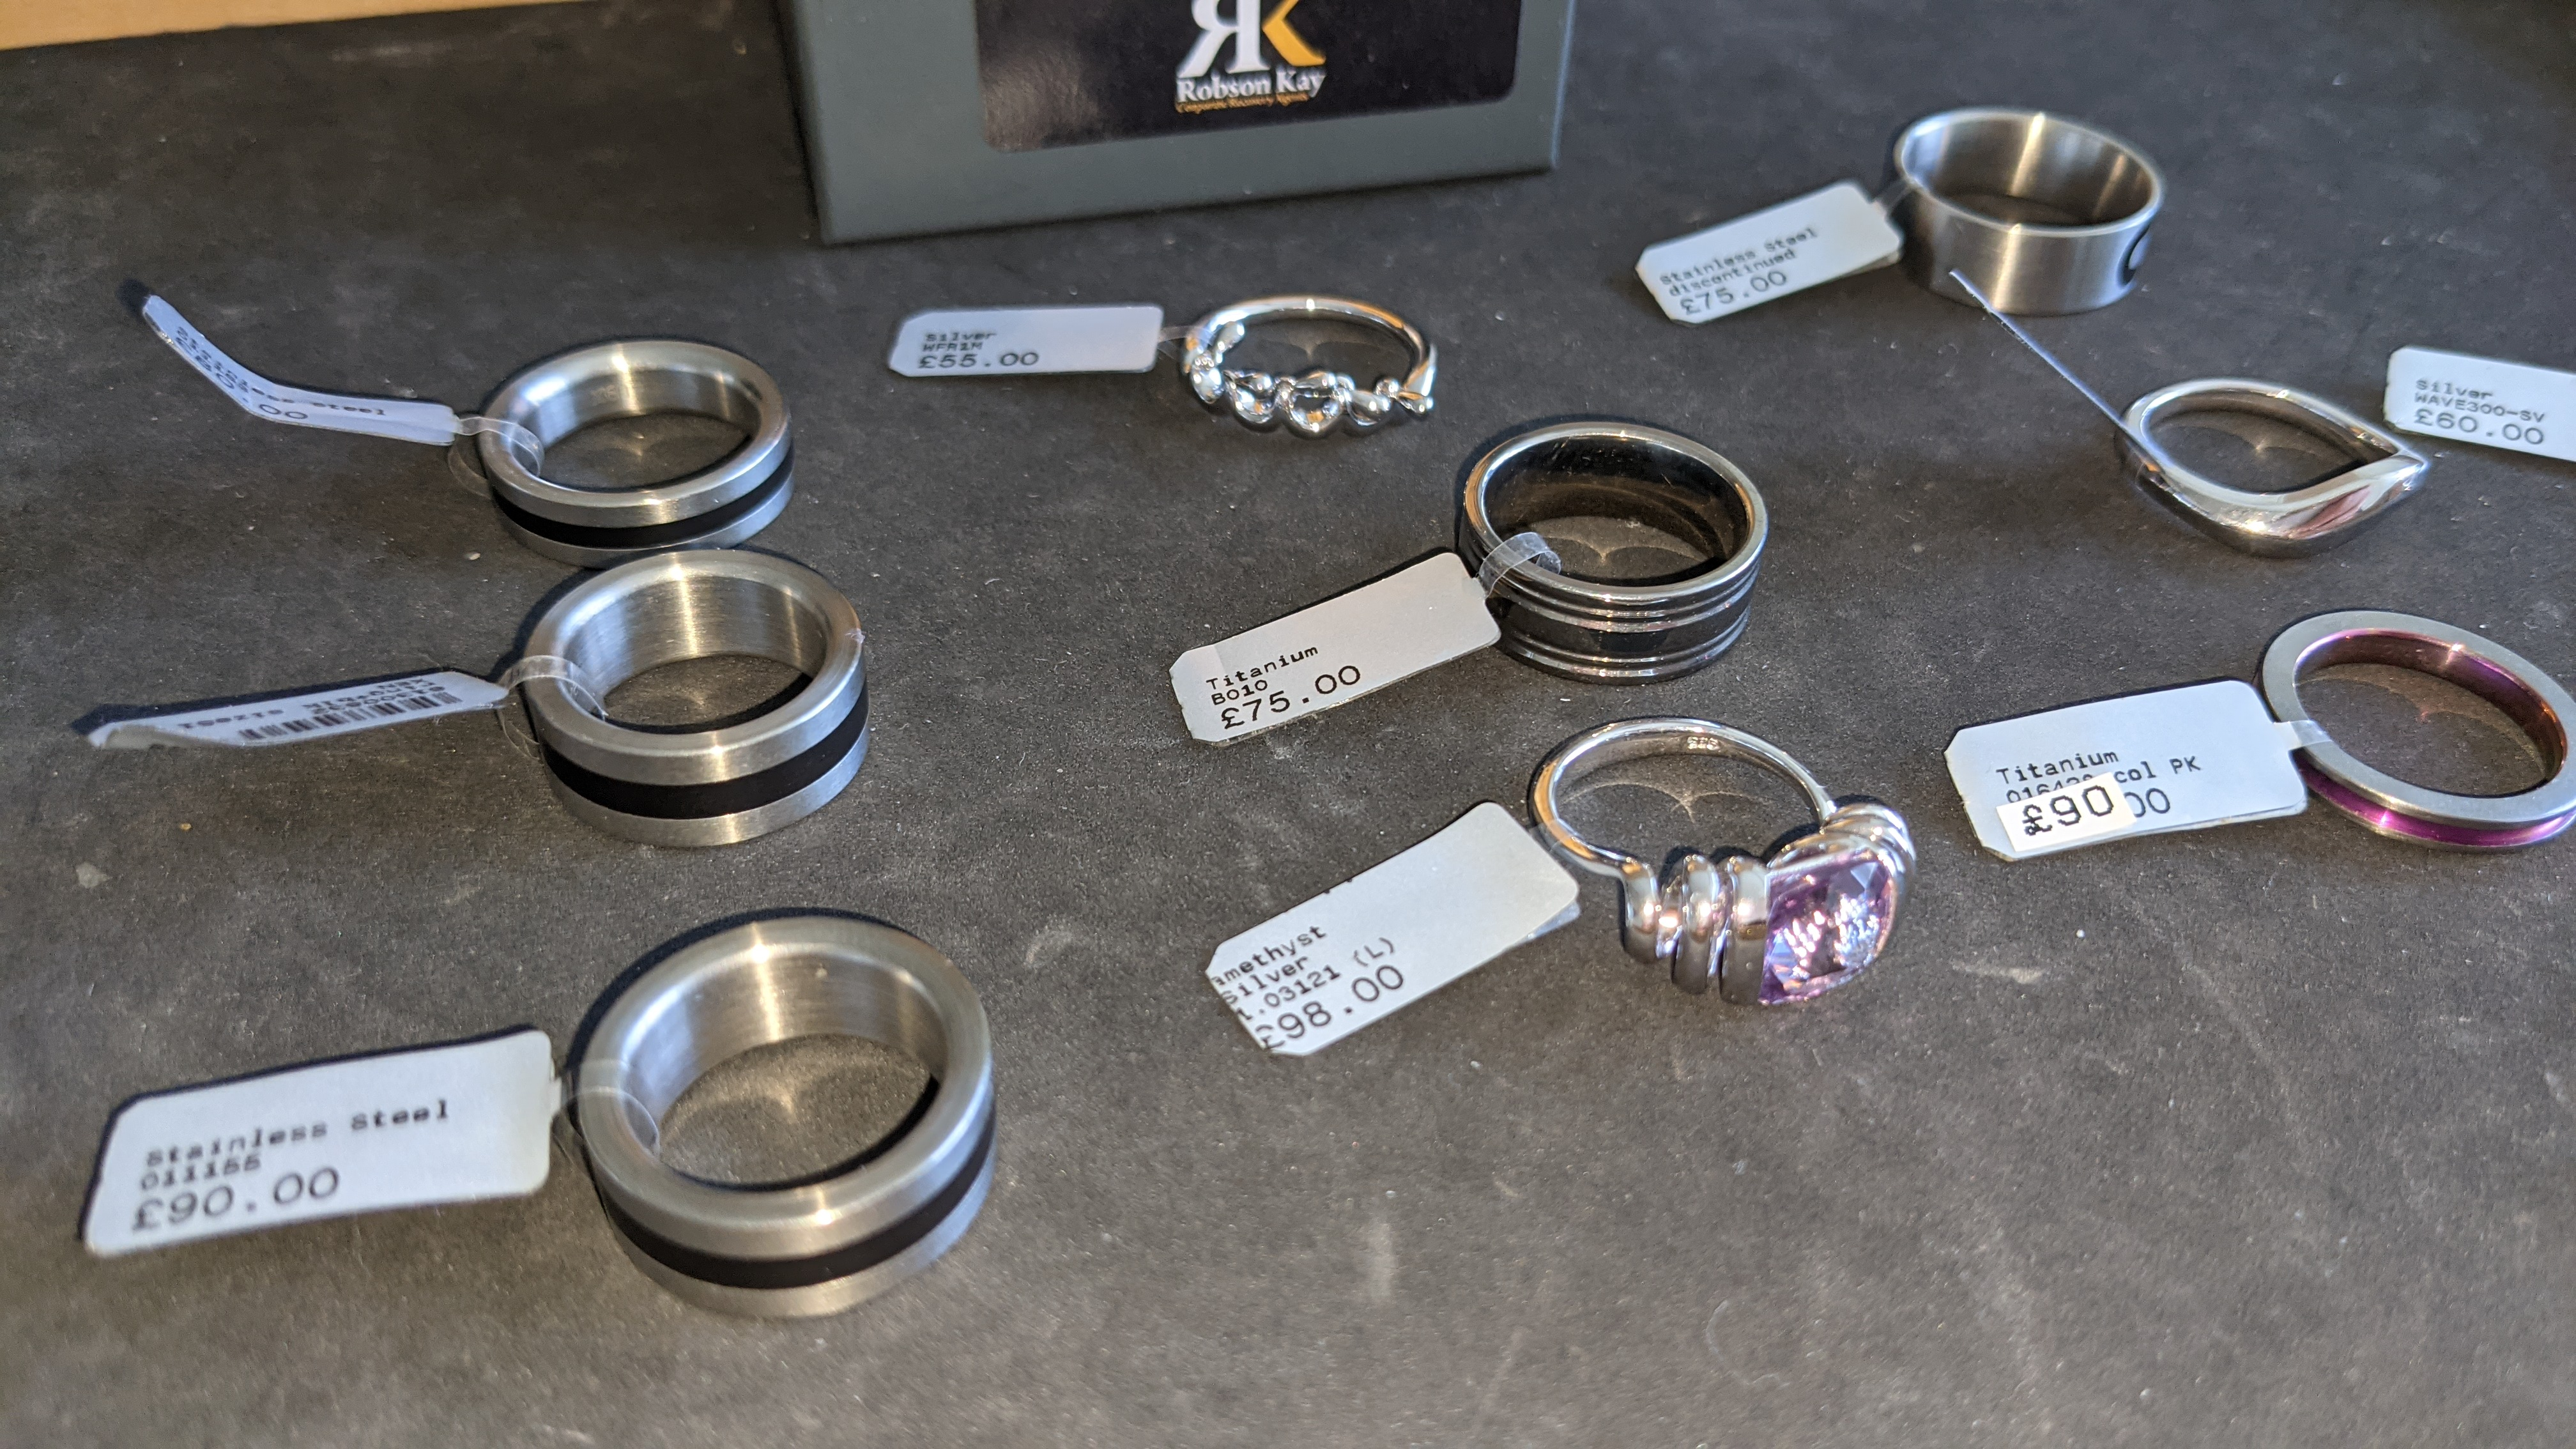 10 off assorted rings in a variety of styles, colours & finishes with RRPs from £55 - £98 per ring. - Image 4 of 13